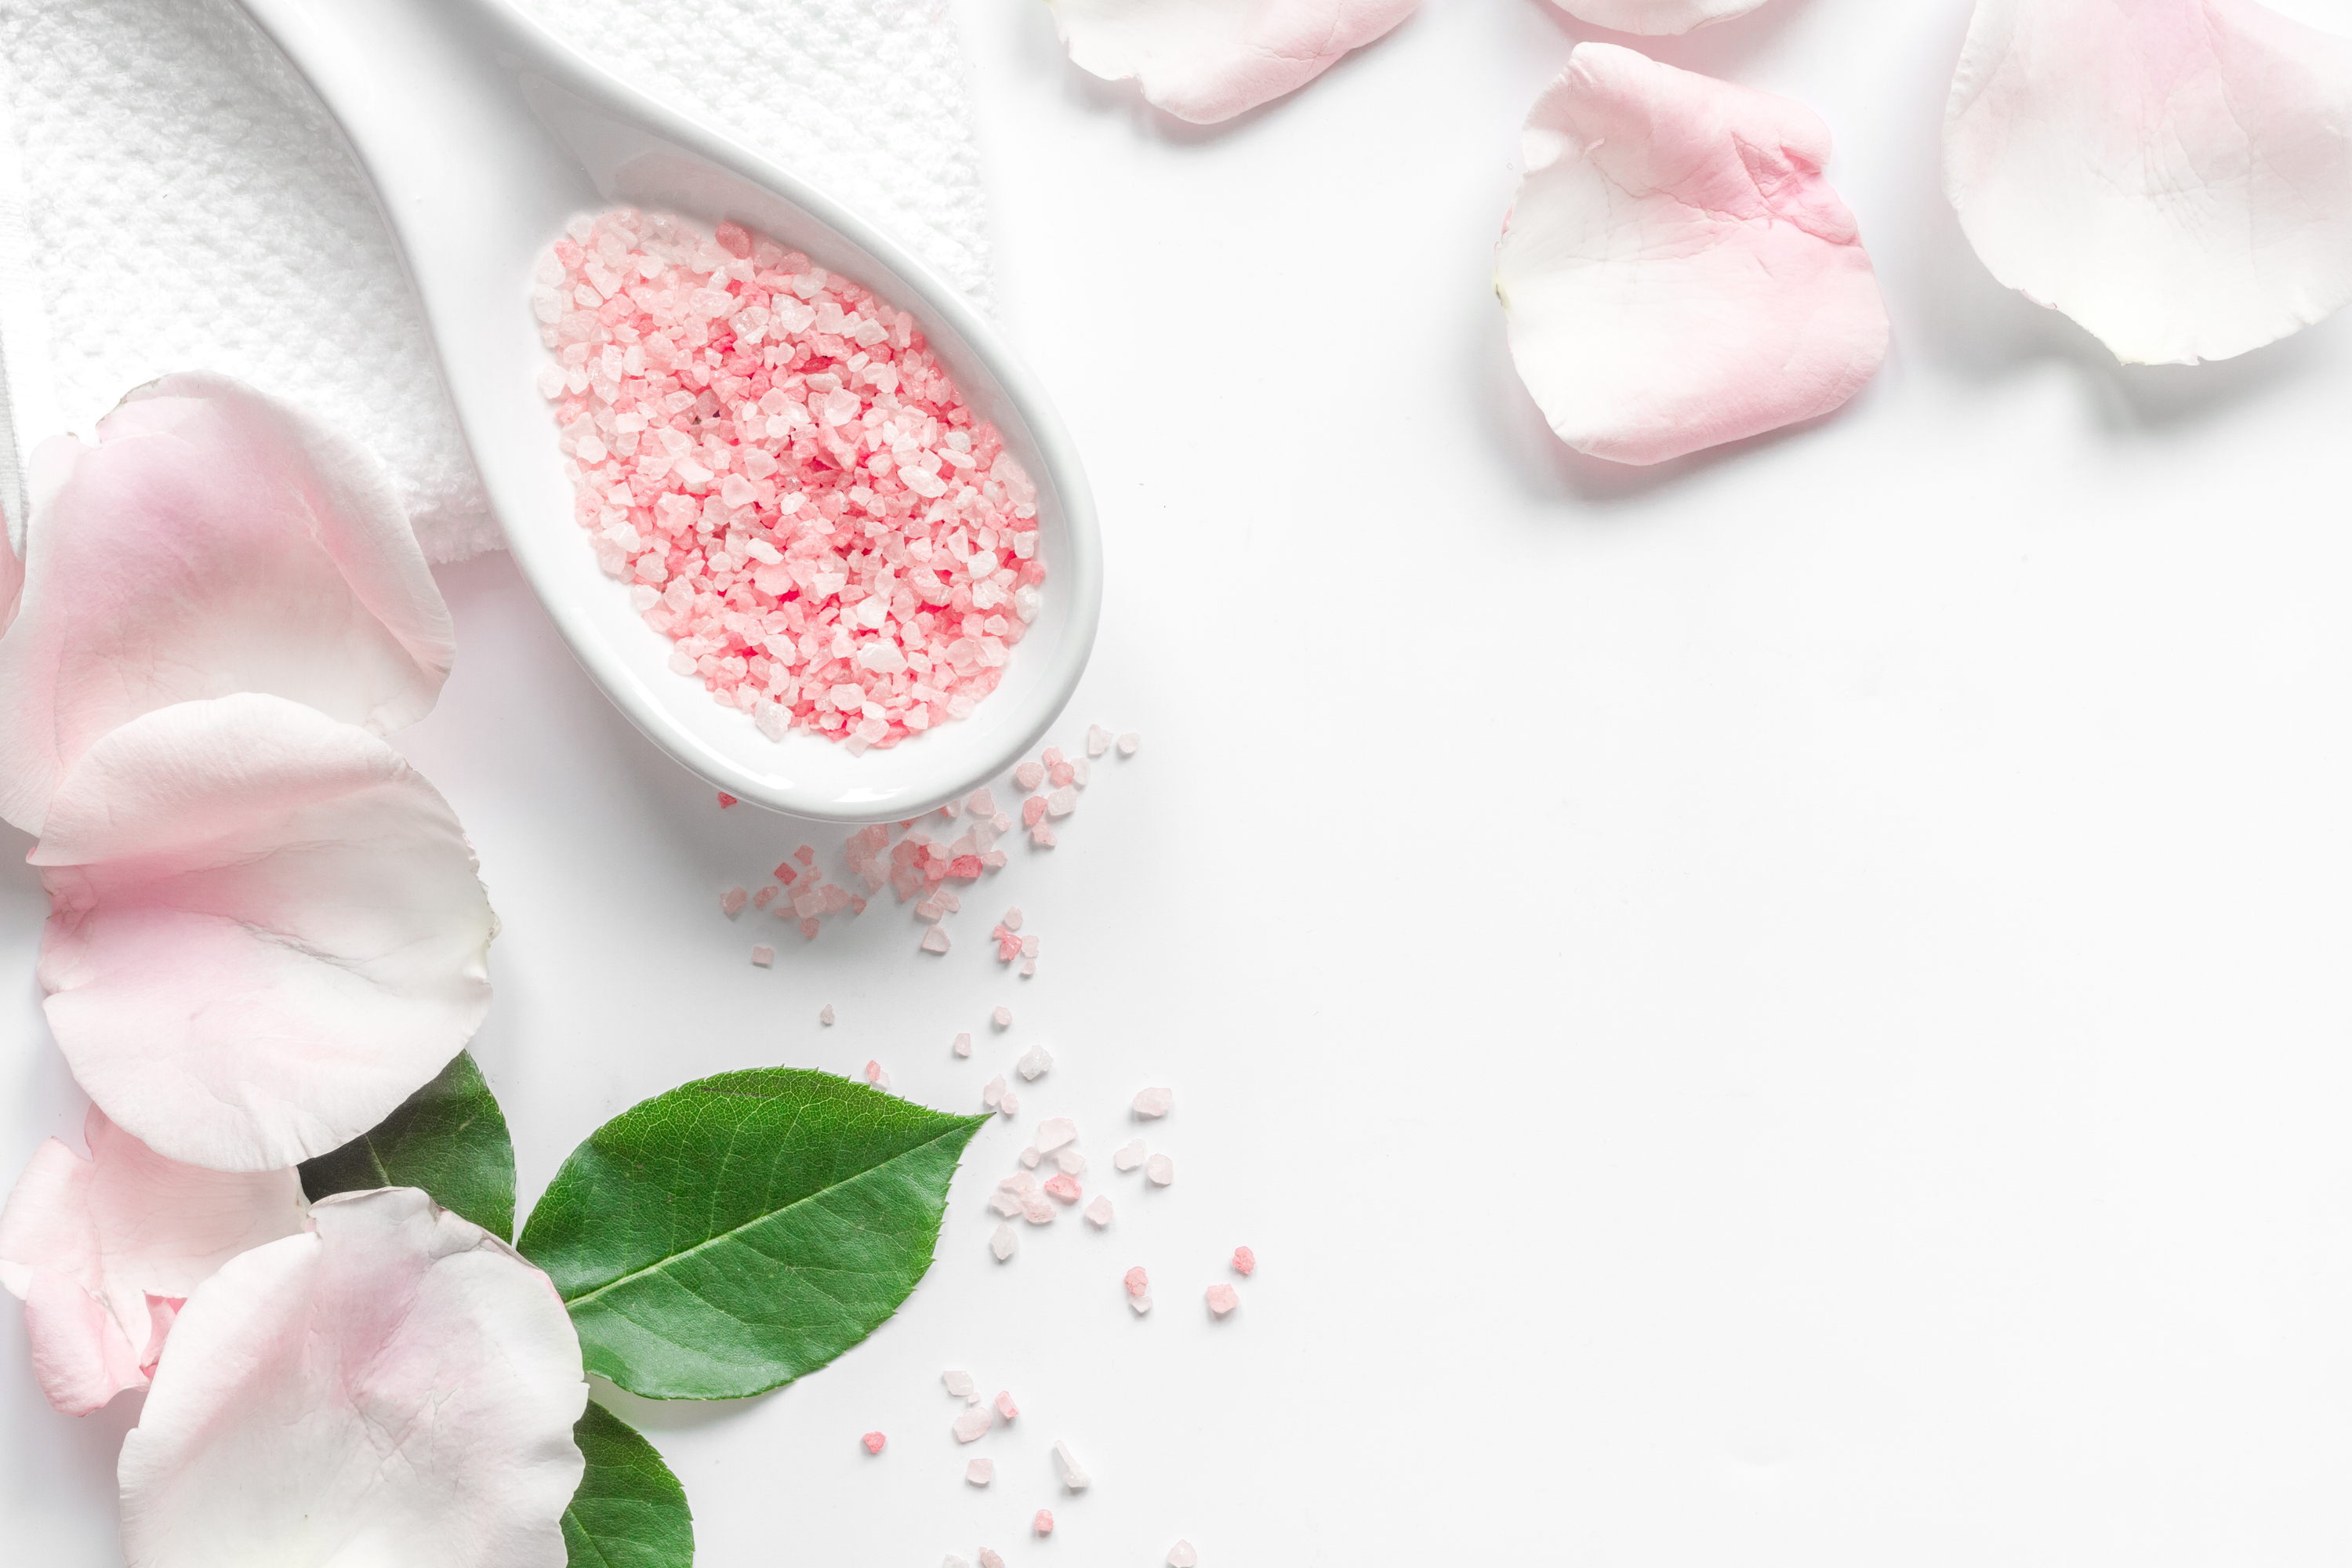 If you're looking for something you can DIY with stuff from your garden, look no further. These DIY bath salts are so easy to make and will help you relax.